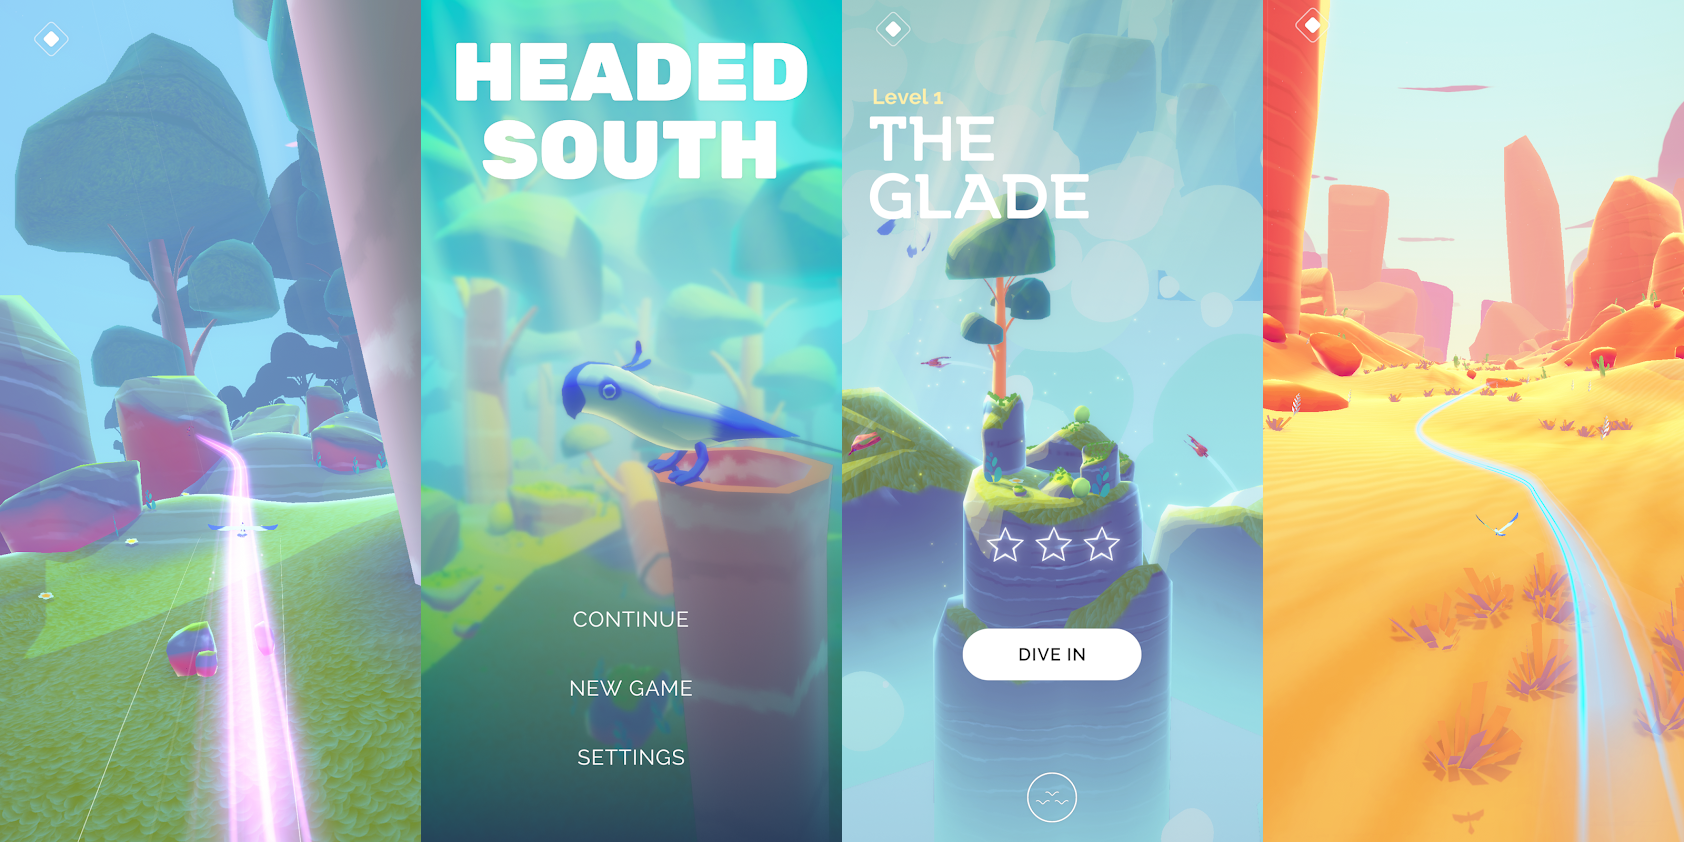 Monument Valley's ustwo creates Motion Sense game 'Headed South' for Google Pixel 4